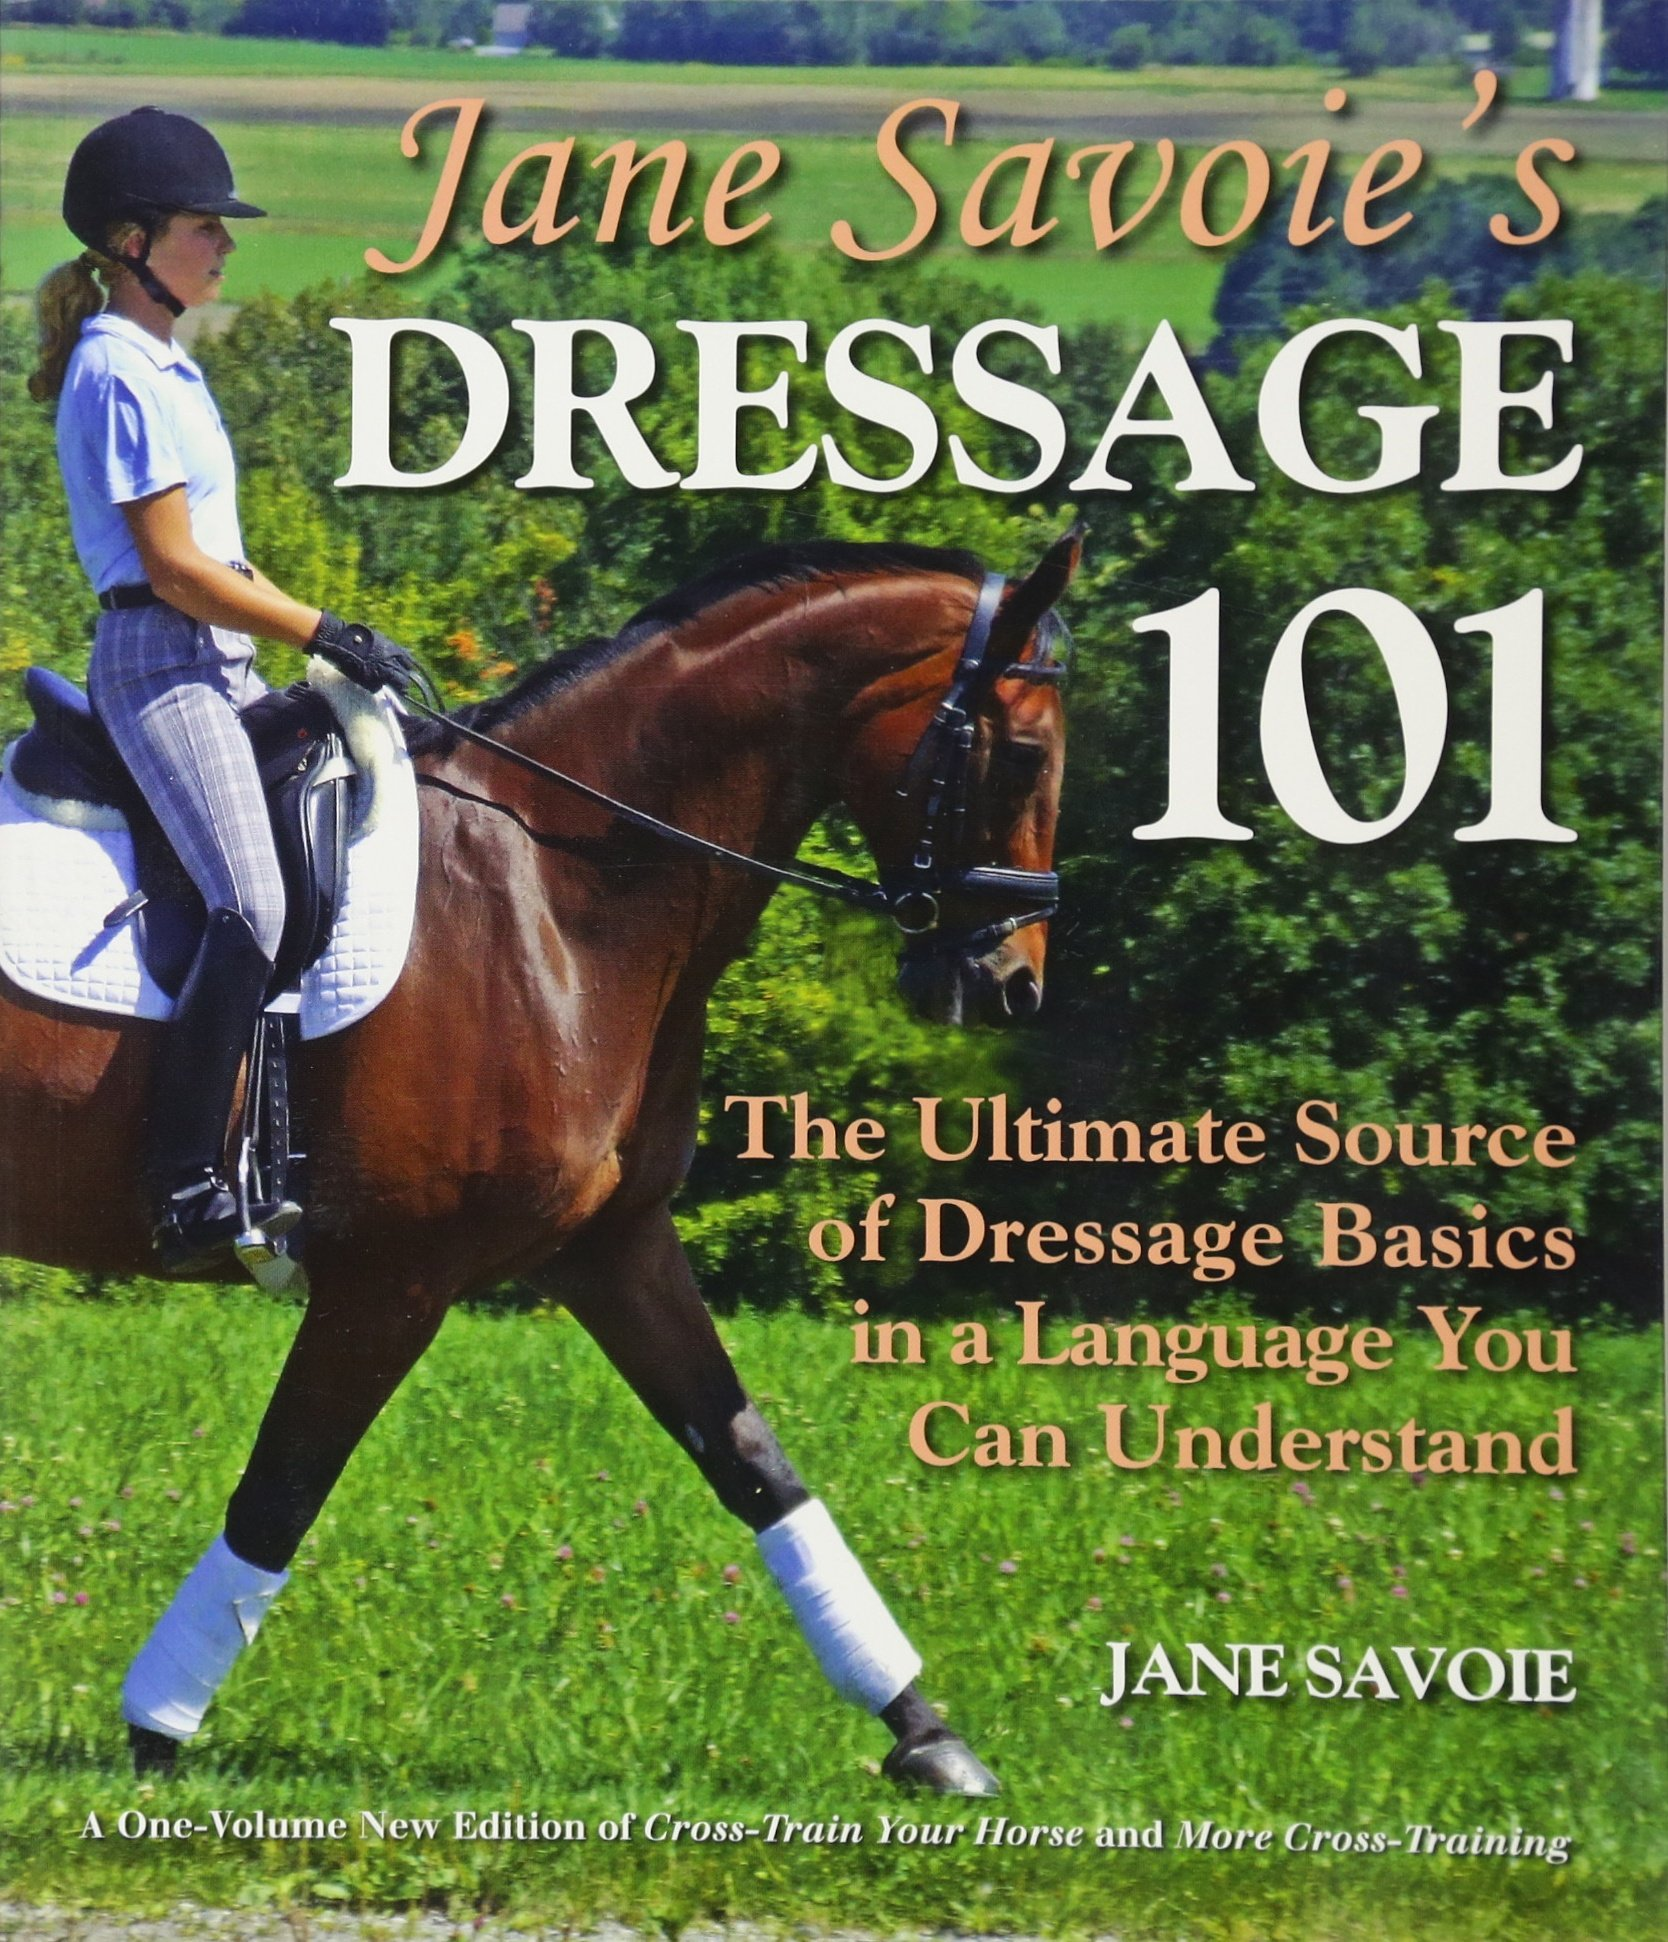 Jane Savoie's Dressage 101: The Ultimate Source of Dressage Basics in a Language You Can Understand